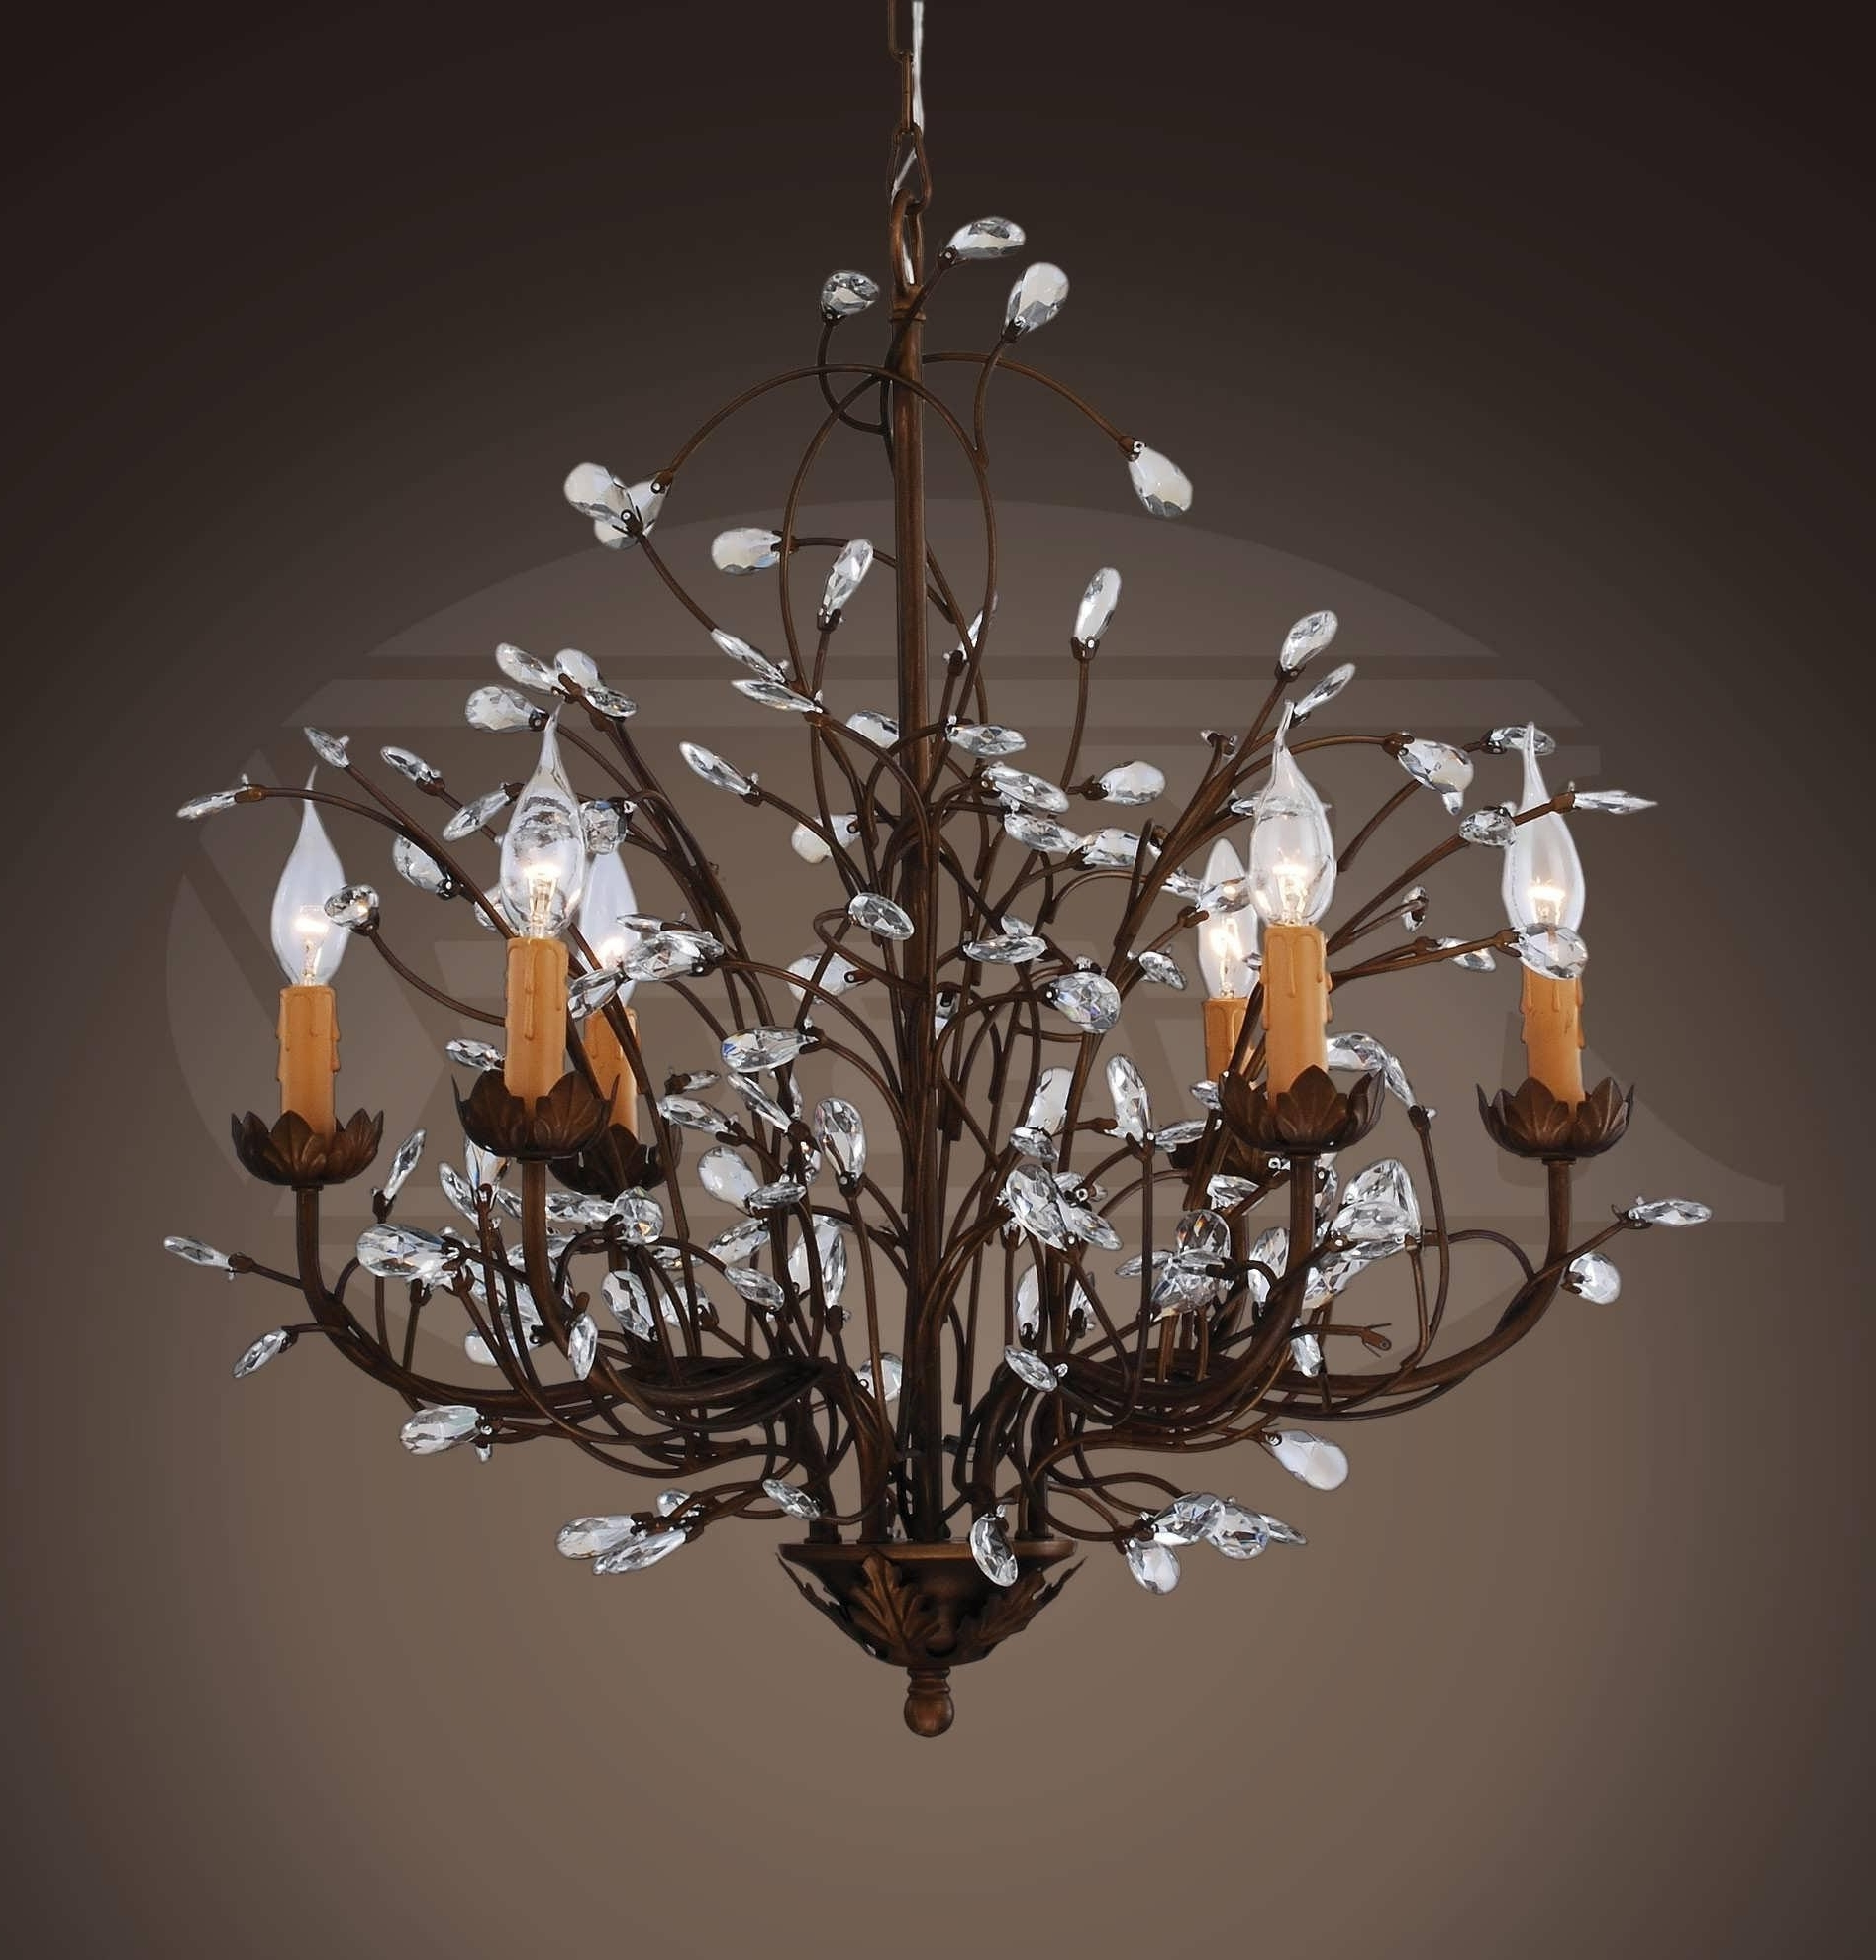 Large Contemporary Chandeliers For Preferred Chandeliers : Contemporary Chandelier Lighting Beautiful Chandeliers (View 11 of 20)